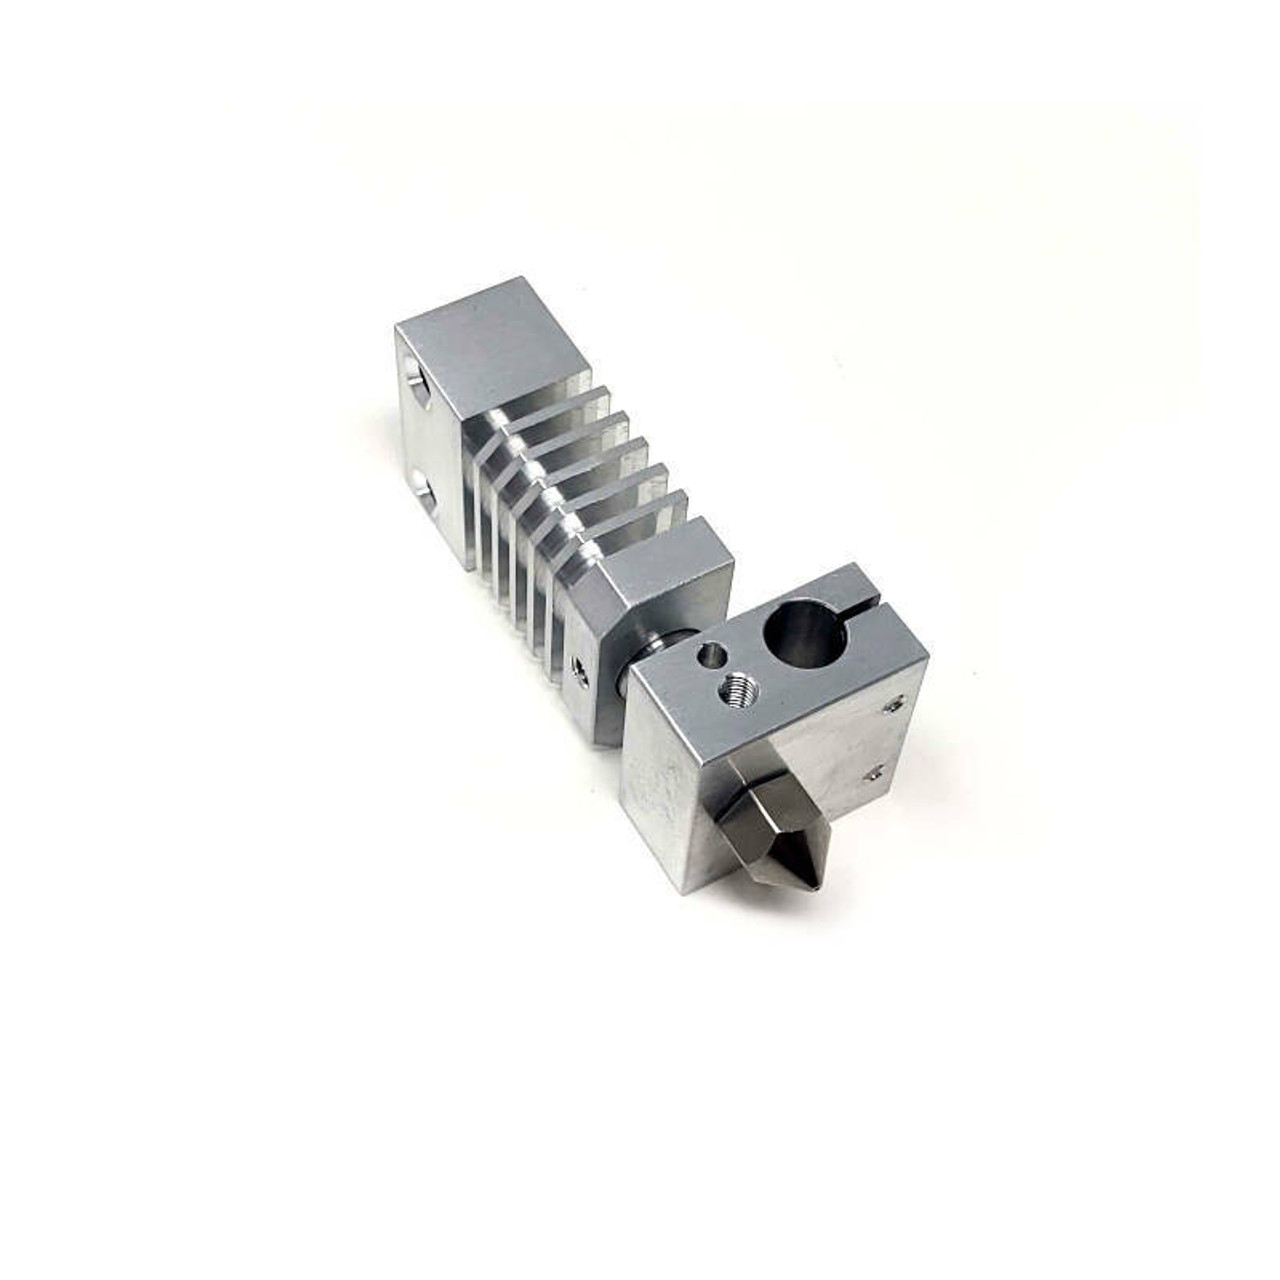 All Metal Hotend Kit for Creality CR-10S Pro | Micro Swiss